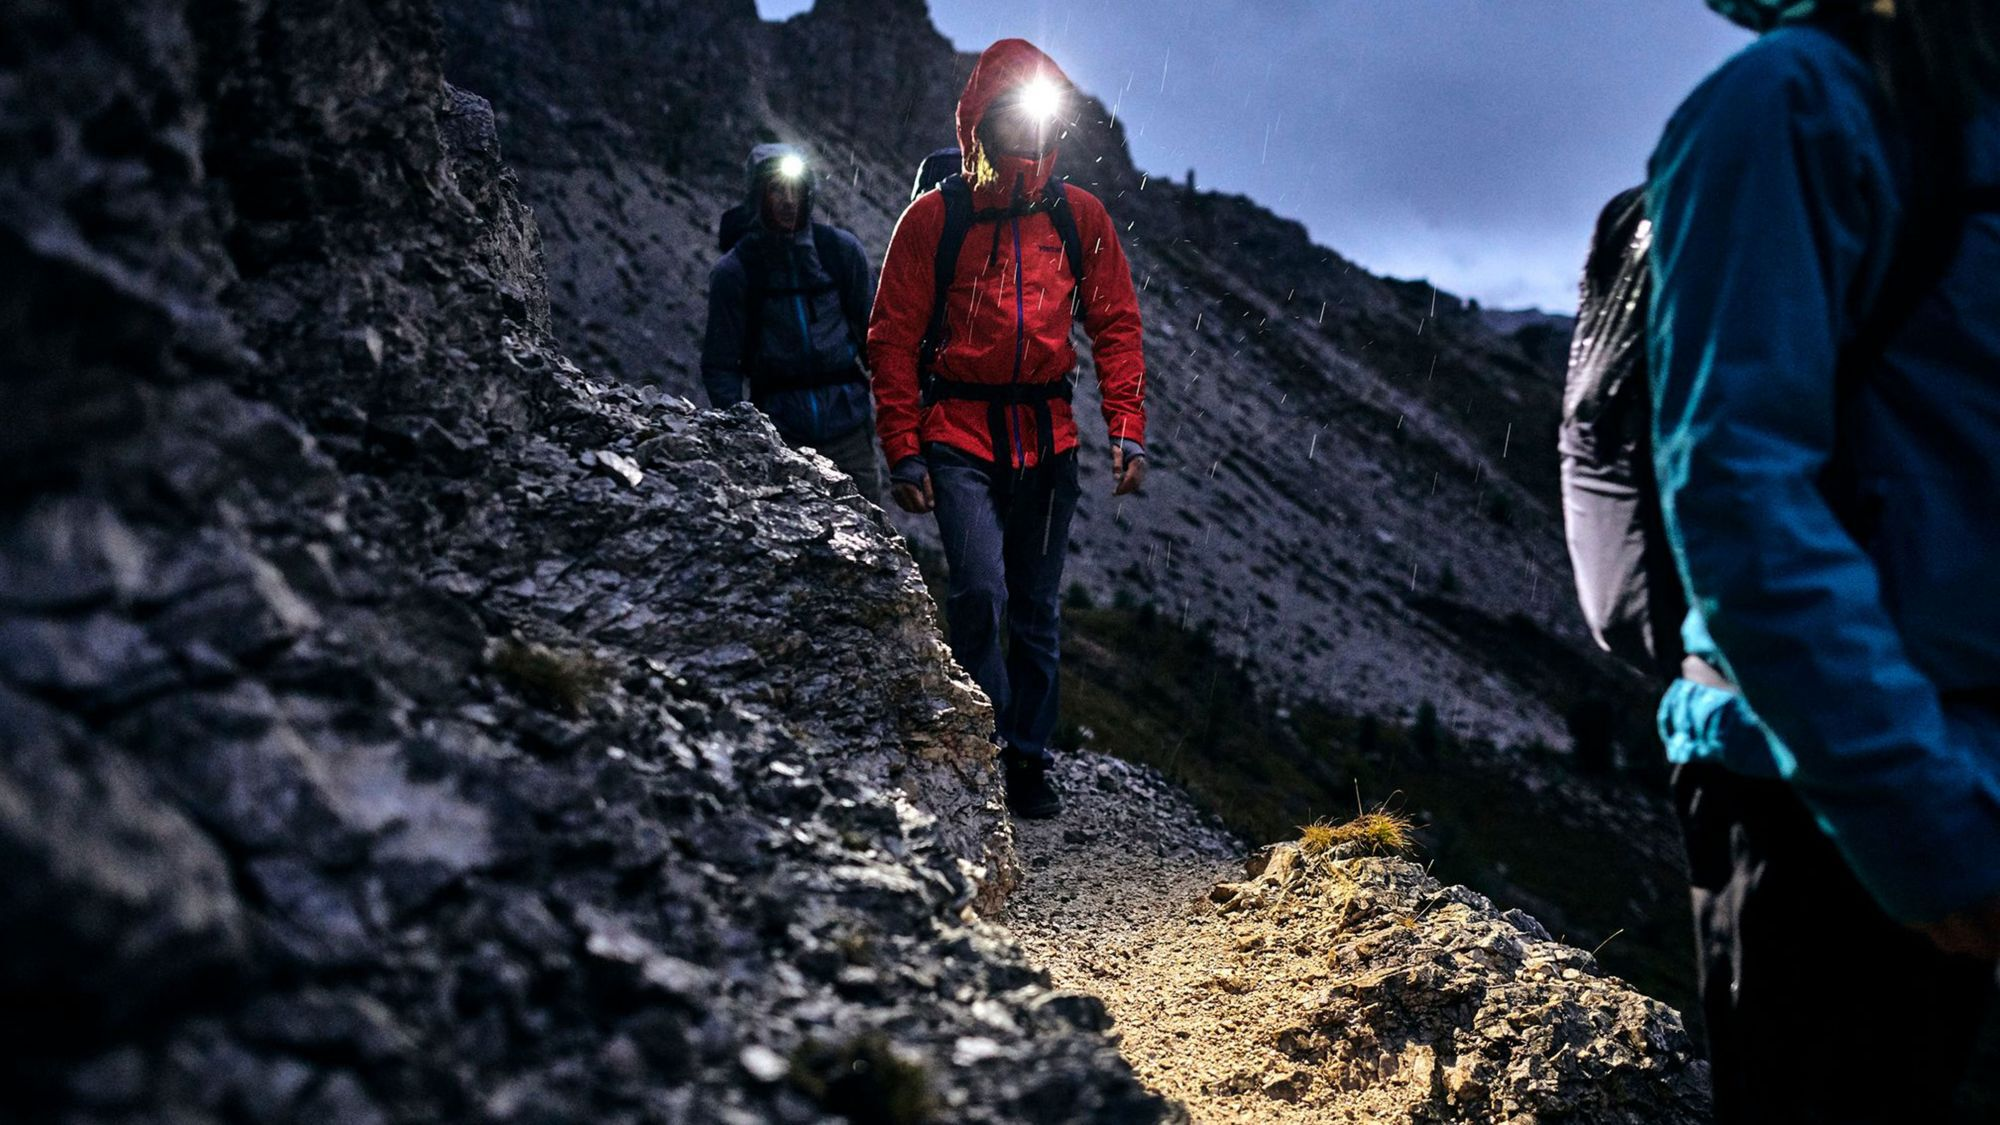 assorted outdoor apparel for winter recreation